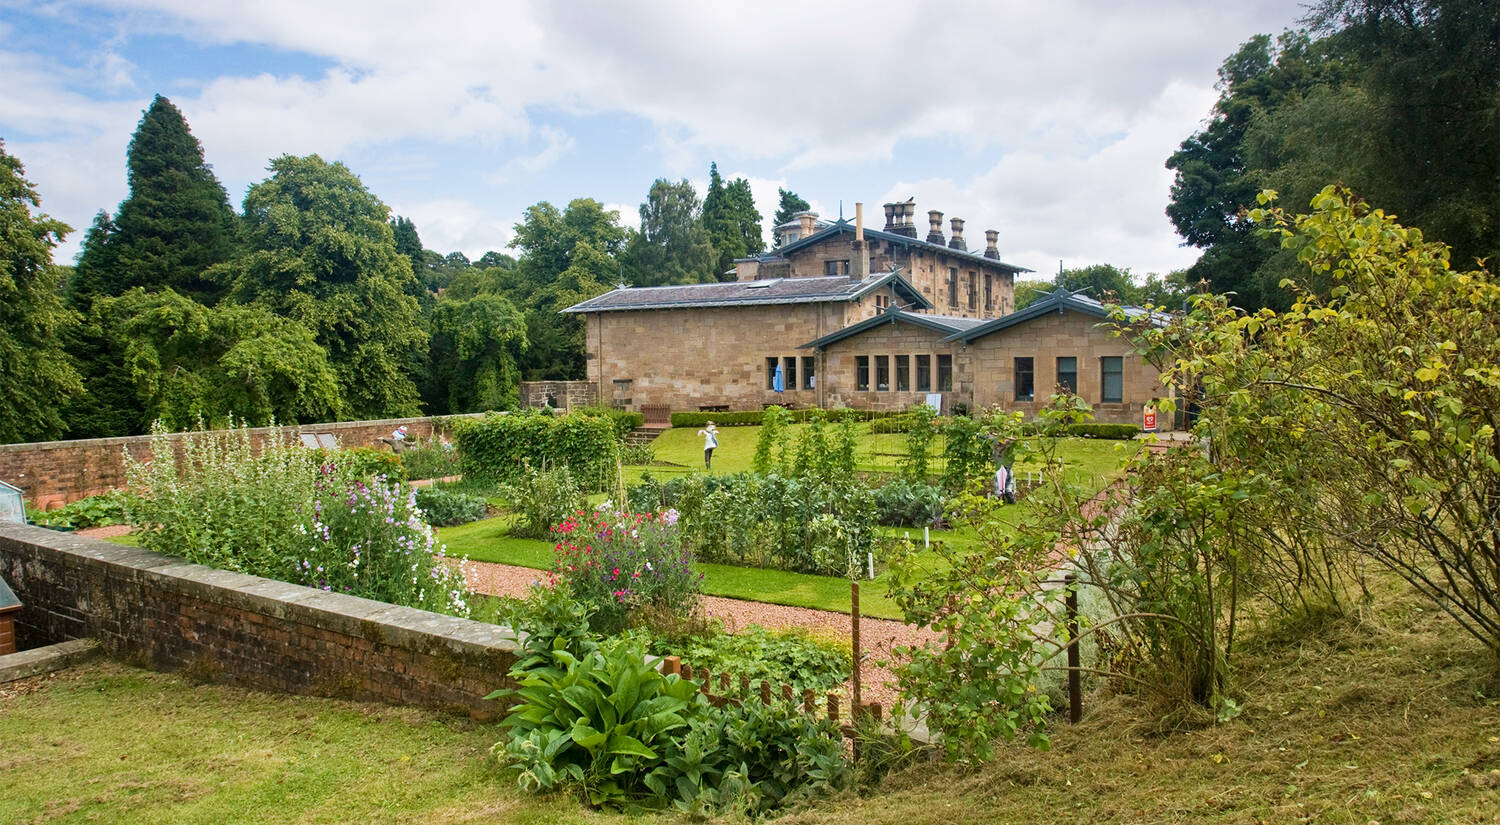 A view of the kitchen garden on a sunny day at Holmwood, with the house in the background. Several beds are laid out and surrounded by flowering borders. Currant frames can be seen at the centre. Several scarecrows stand in various beds.